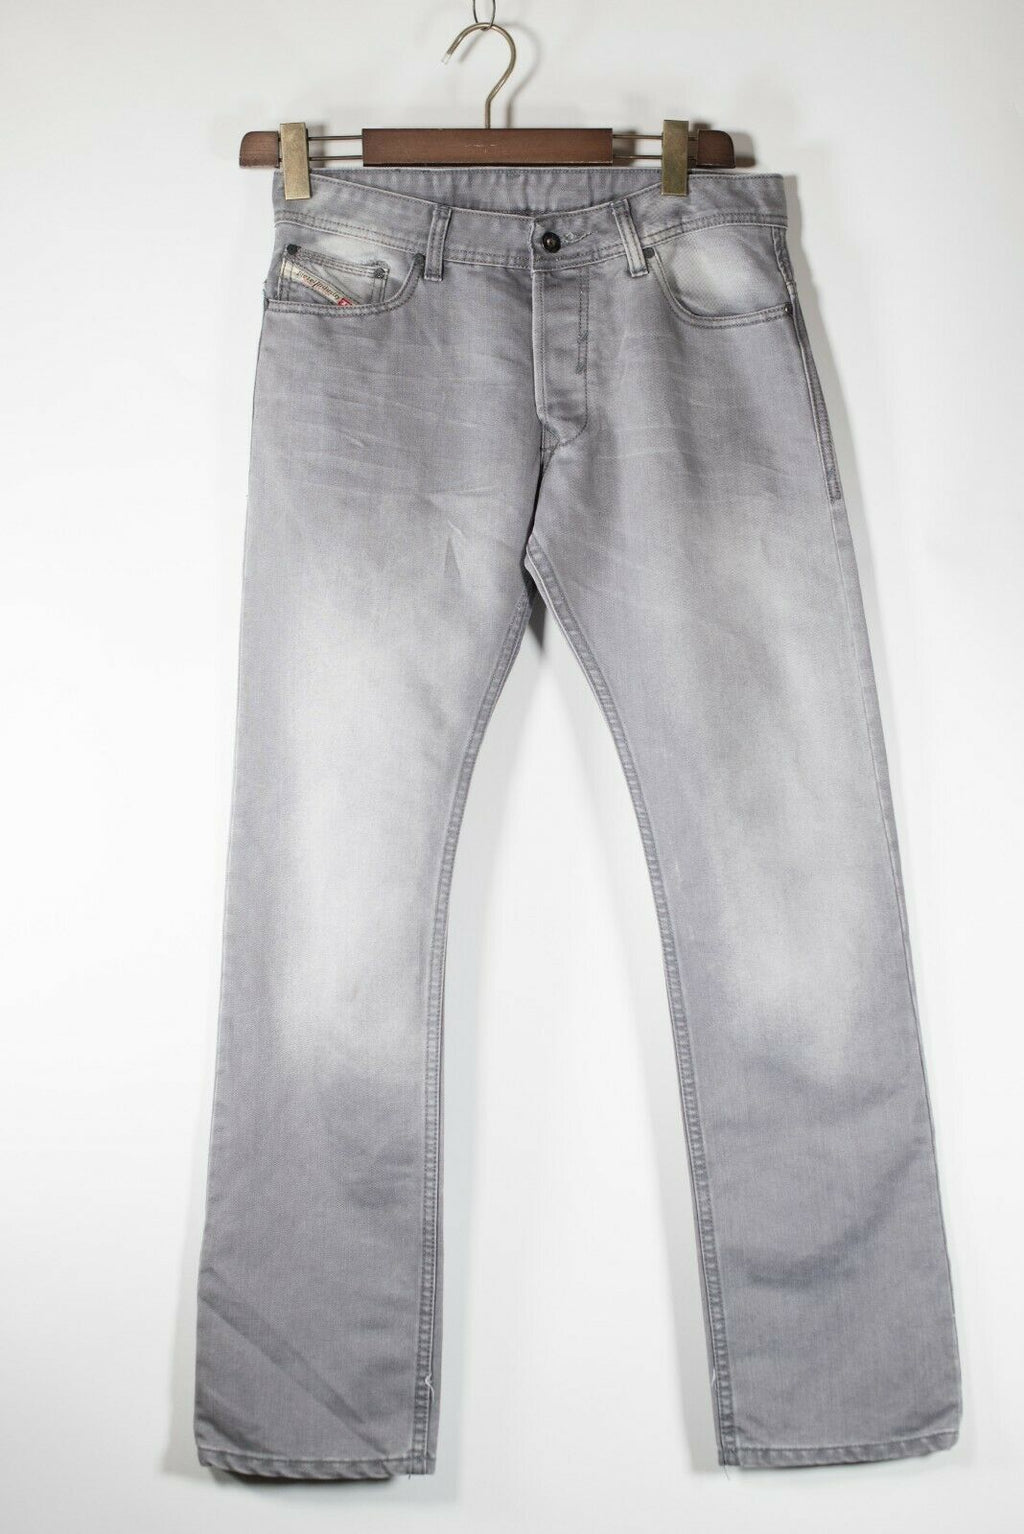 Diesel Men's Size 32 Gray Jeans Straight Leg 5 Pocket Made In Italy Faded Denim